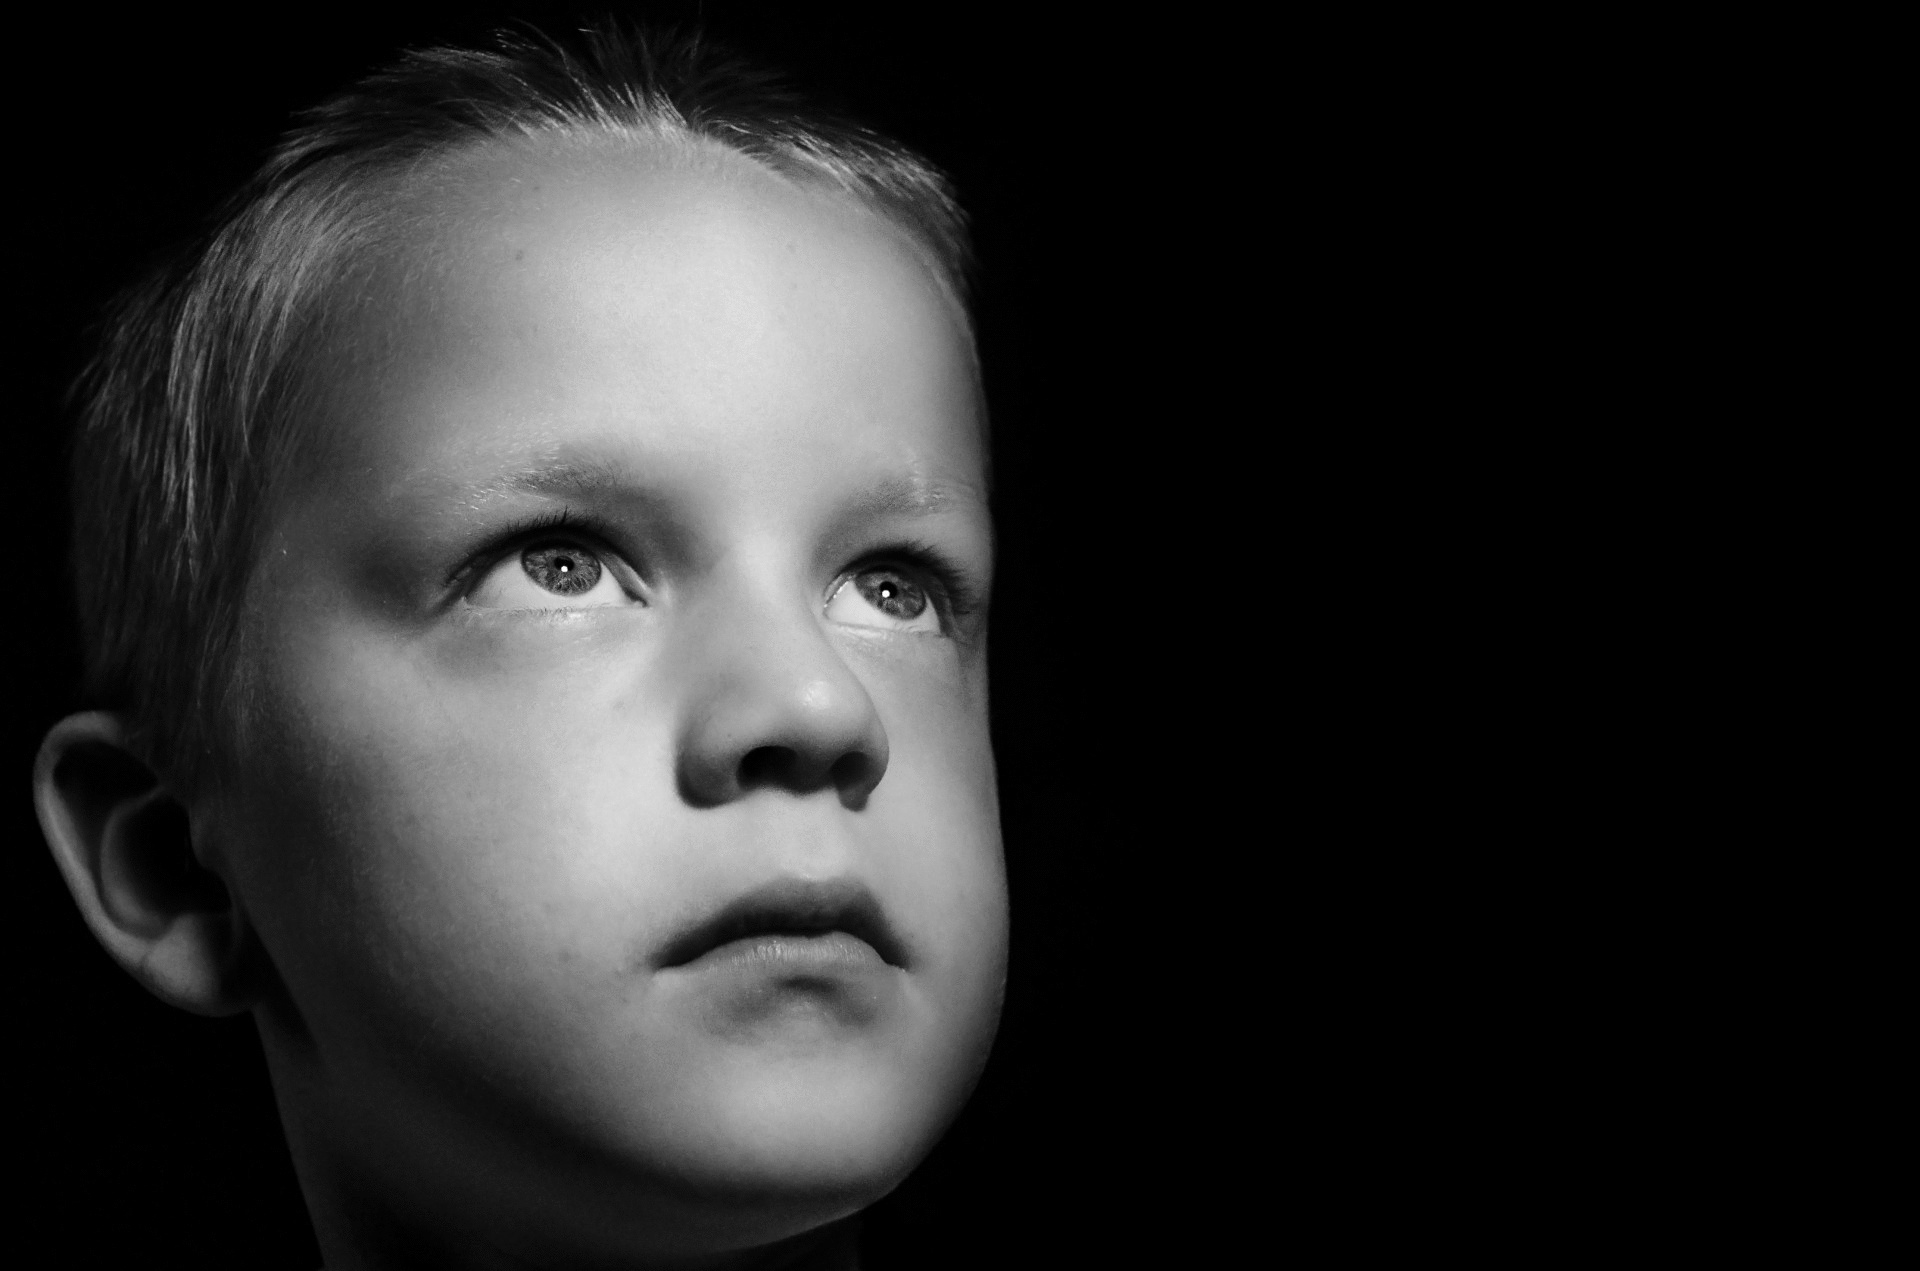 People Reveal The Dumbest Thing They Ever Believed As A Child